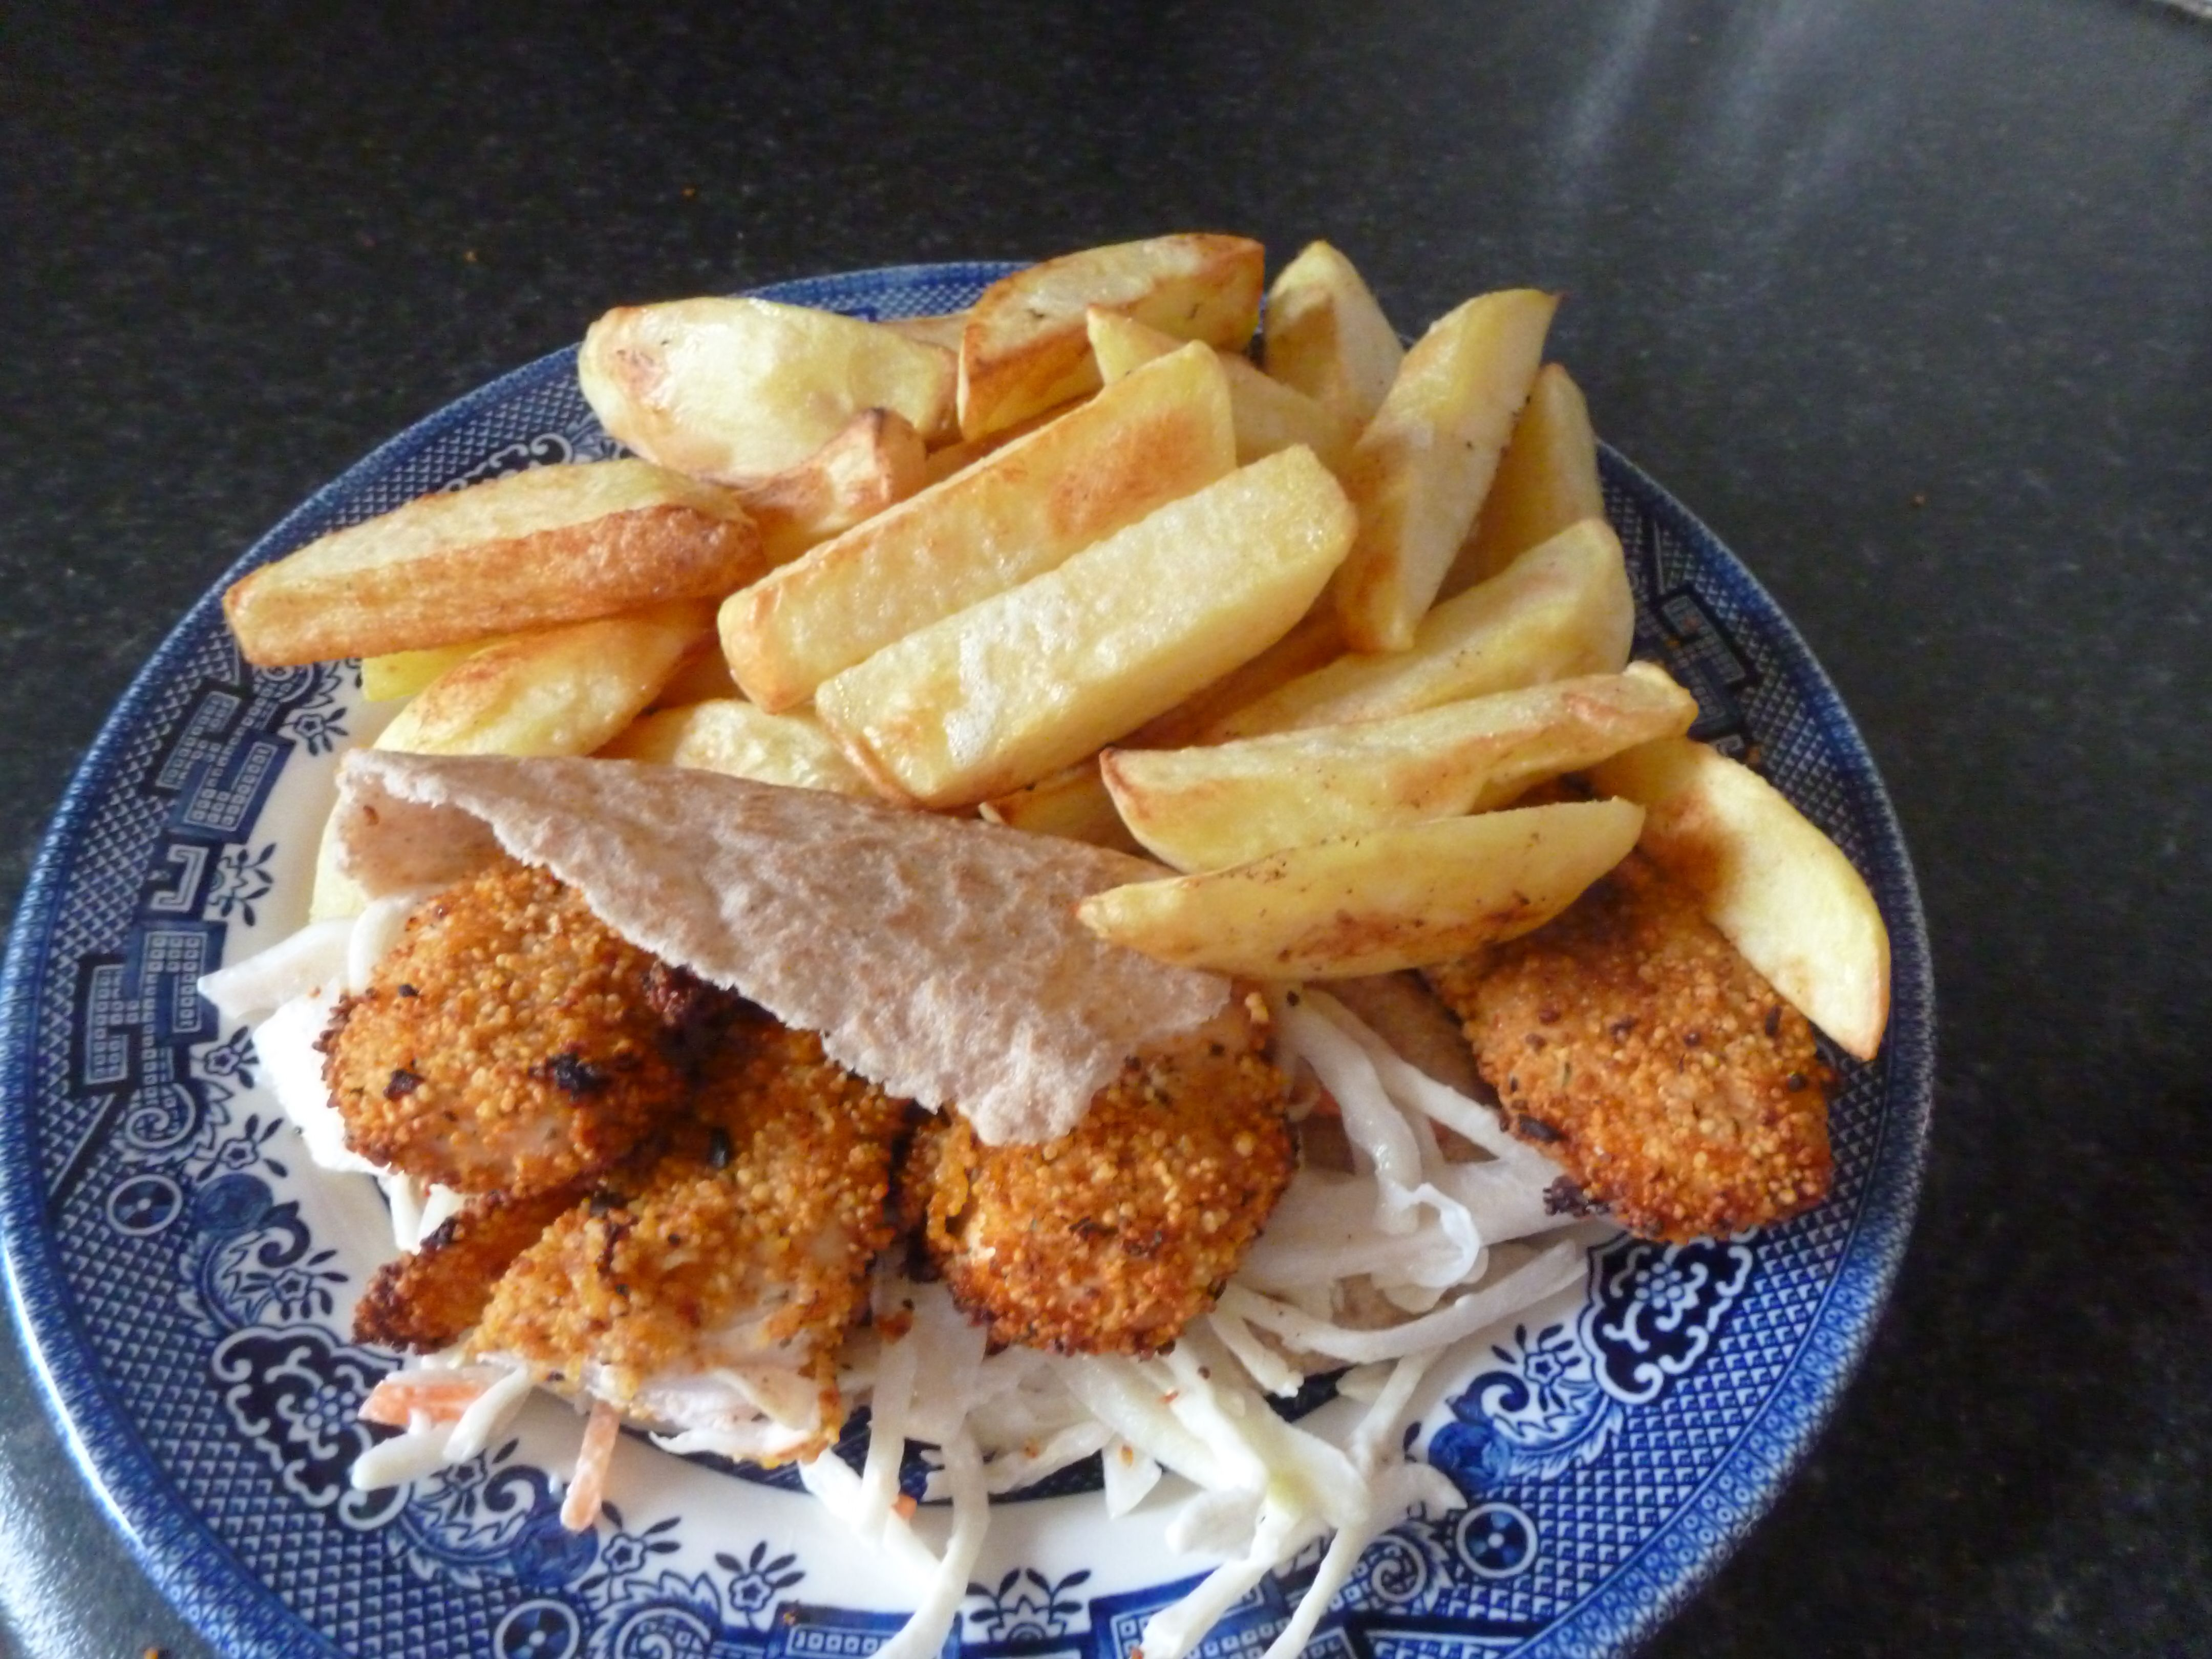 chicken kebab and chips 6 syns total if not using the pitta bread